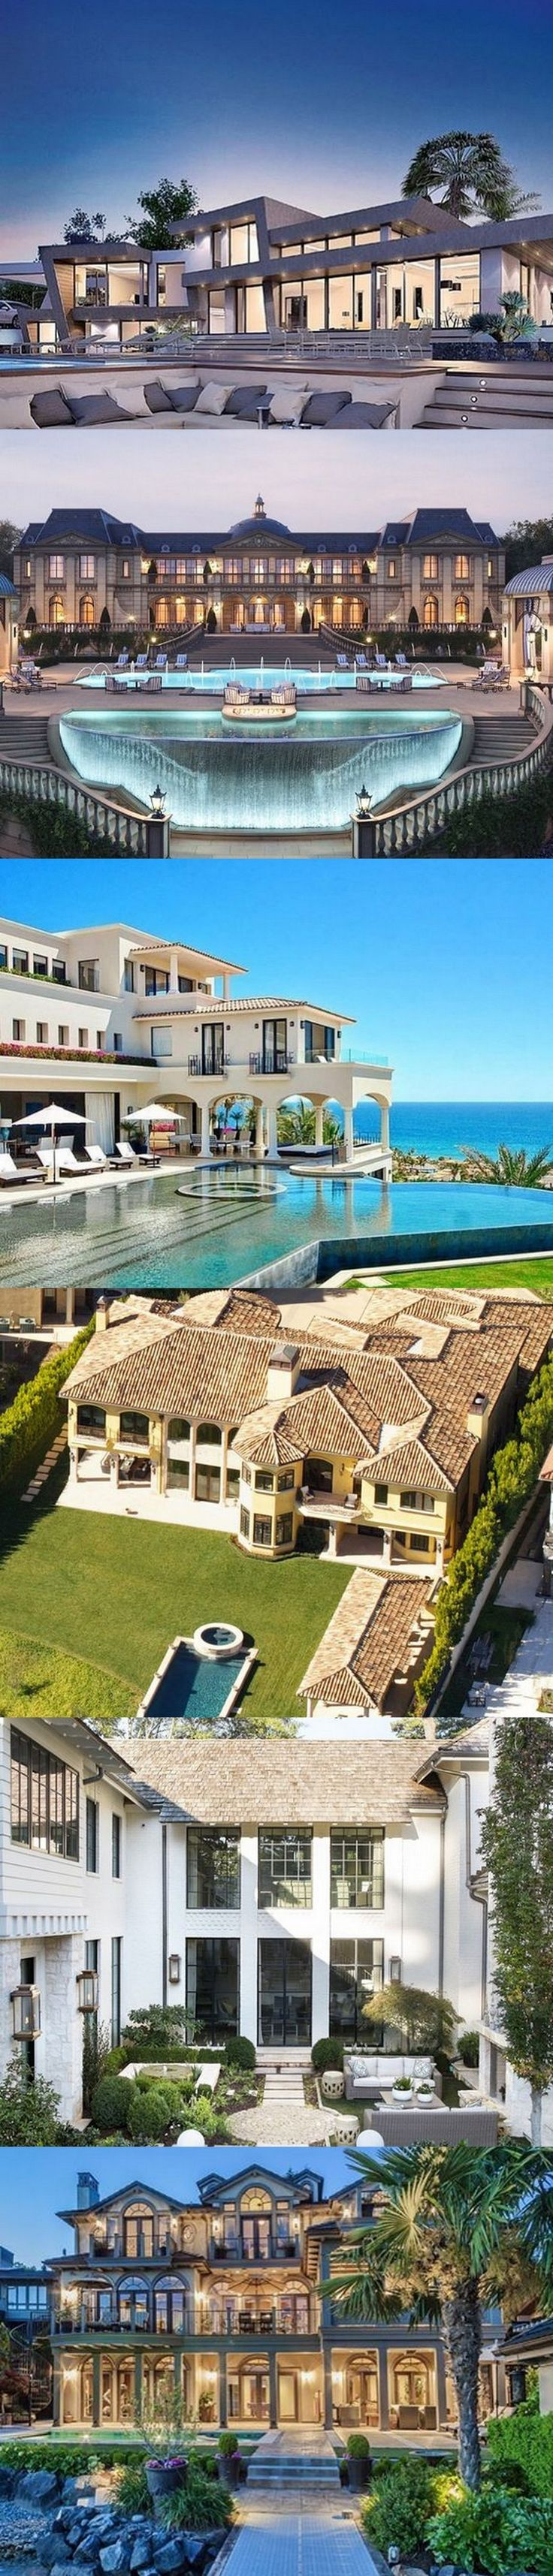 54 stunning dream homes mega mansions from social media - Nice Big Houses With Pools